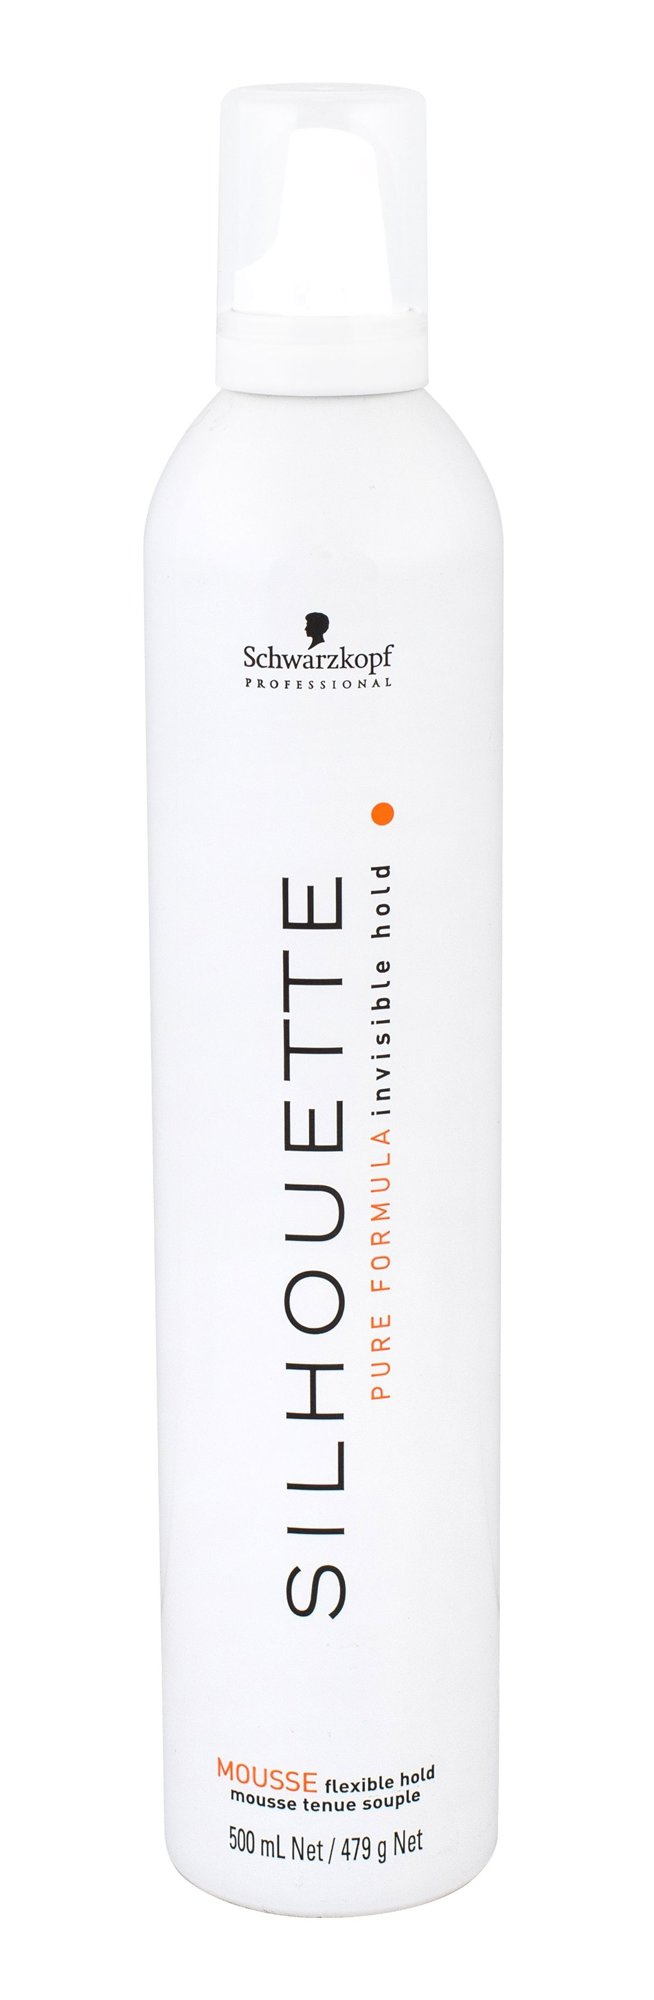 Schwarzkopf Silhouette Flexible Hold Mousse Cosmetic 500ml